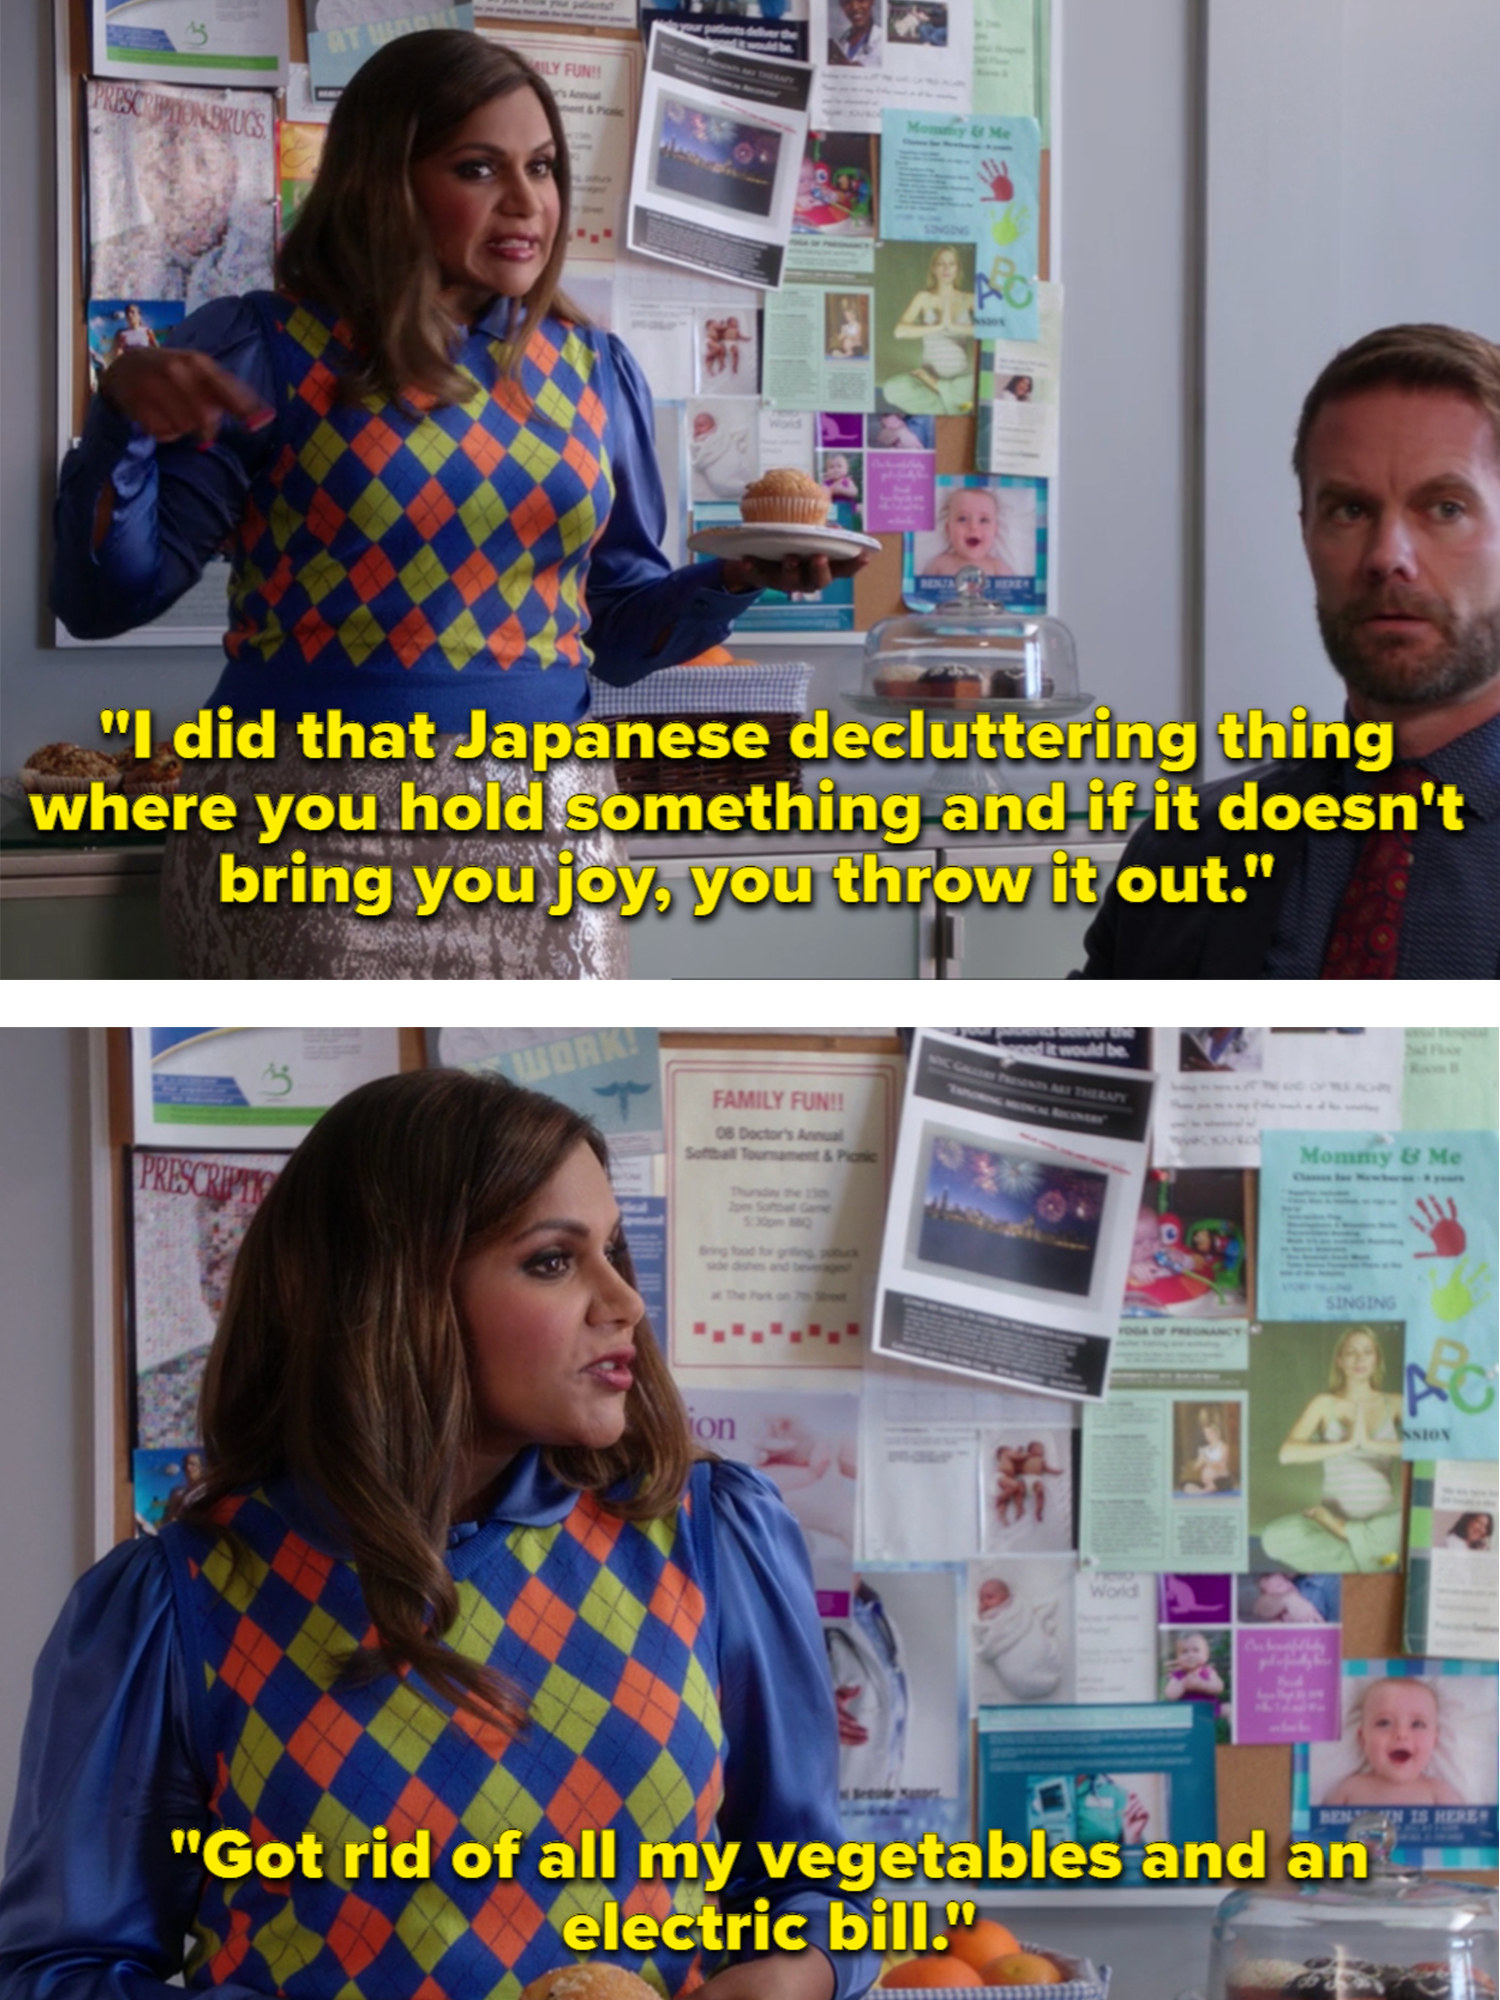 Mindy follows the Japanese decluttering method where you throw out things that don't bring you joy, so Mindy decides to throw out all her vegetables and an electric bill